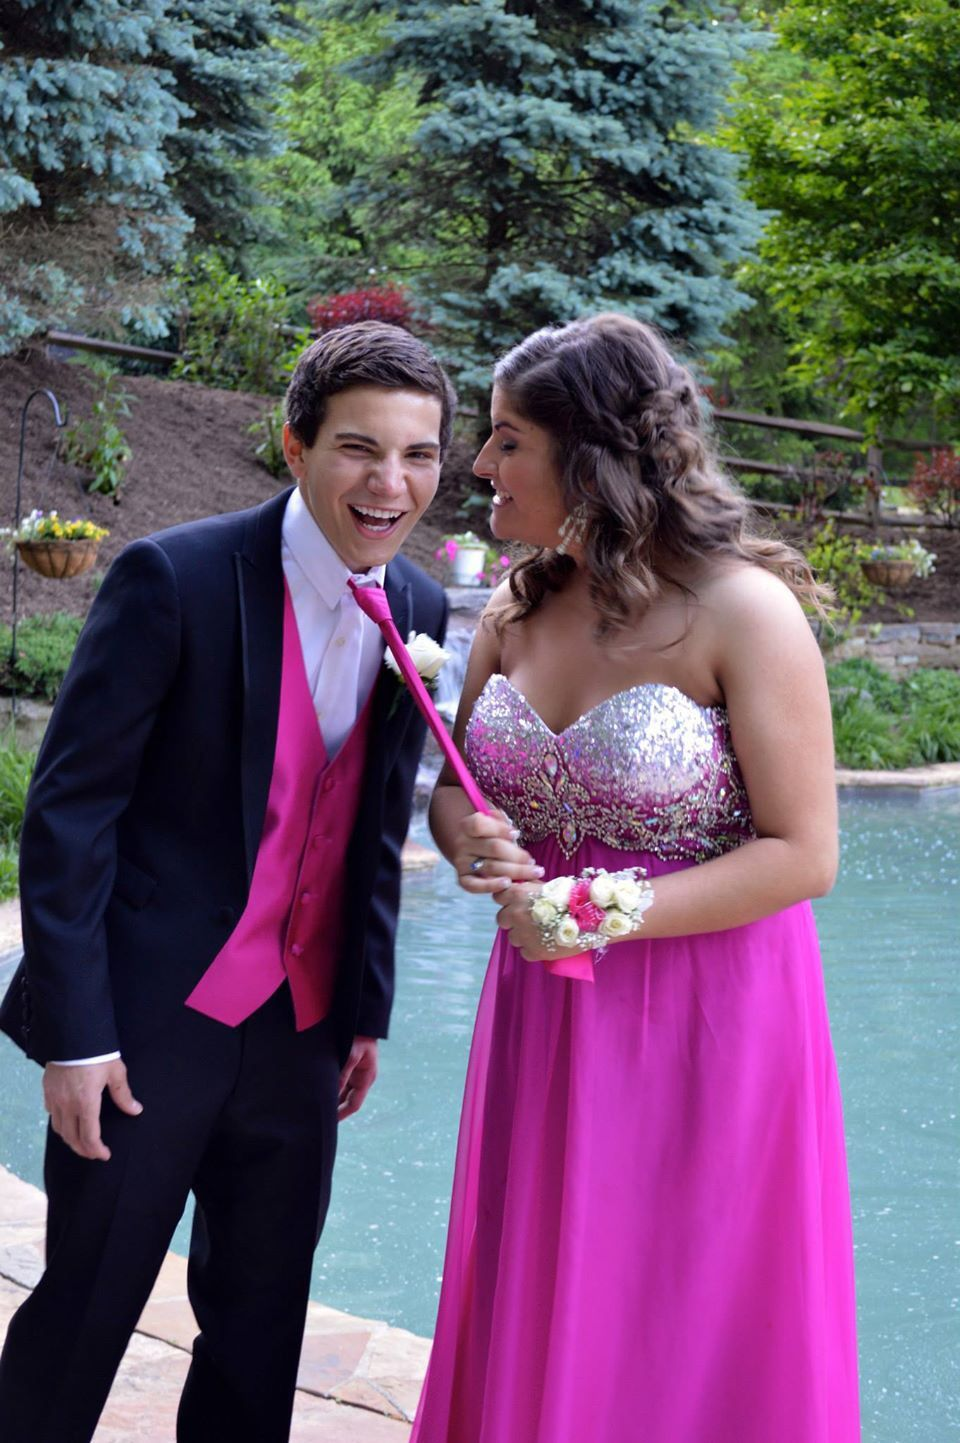 Funny prom picture (prom, date, pink, funny, laugh, best